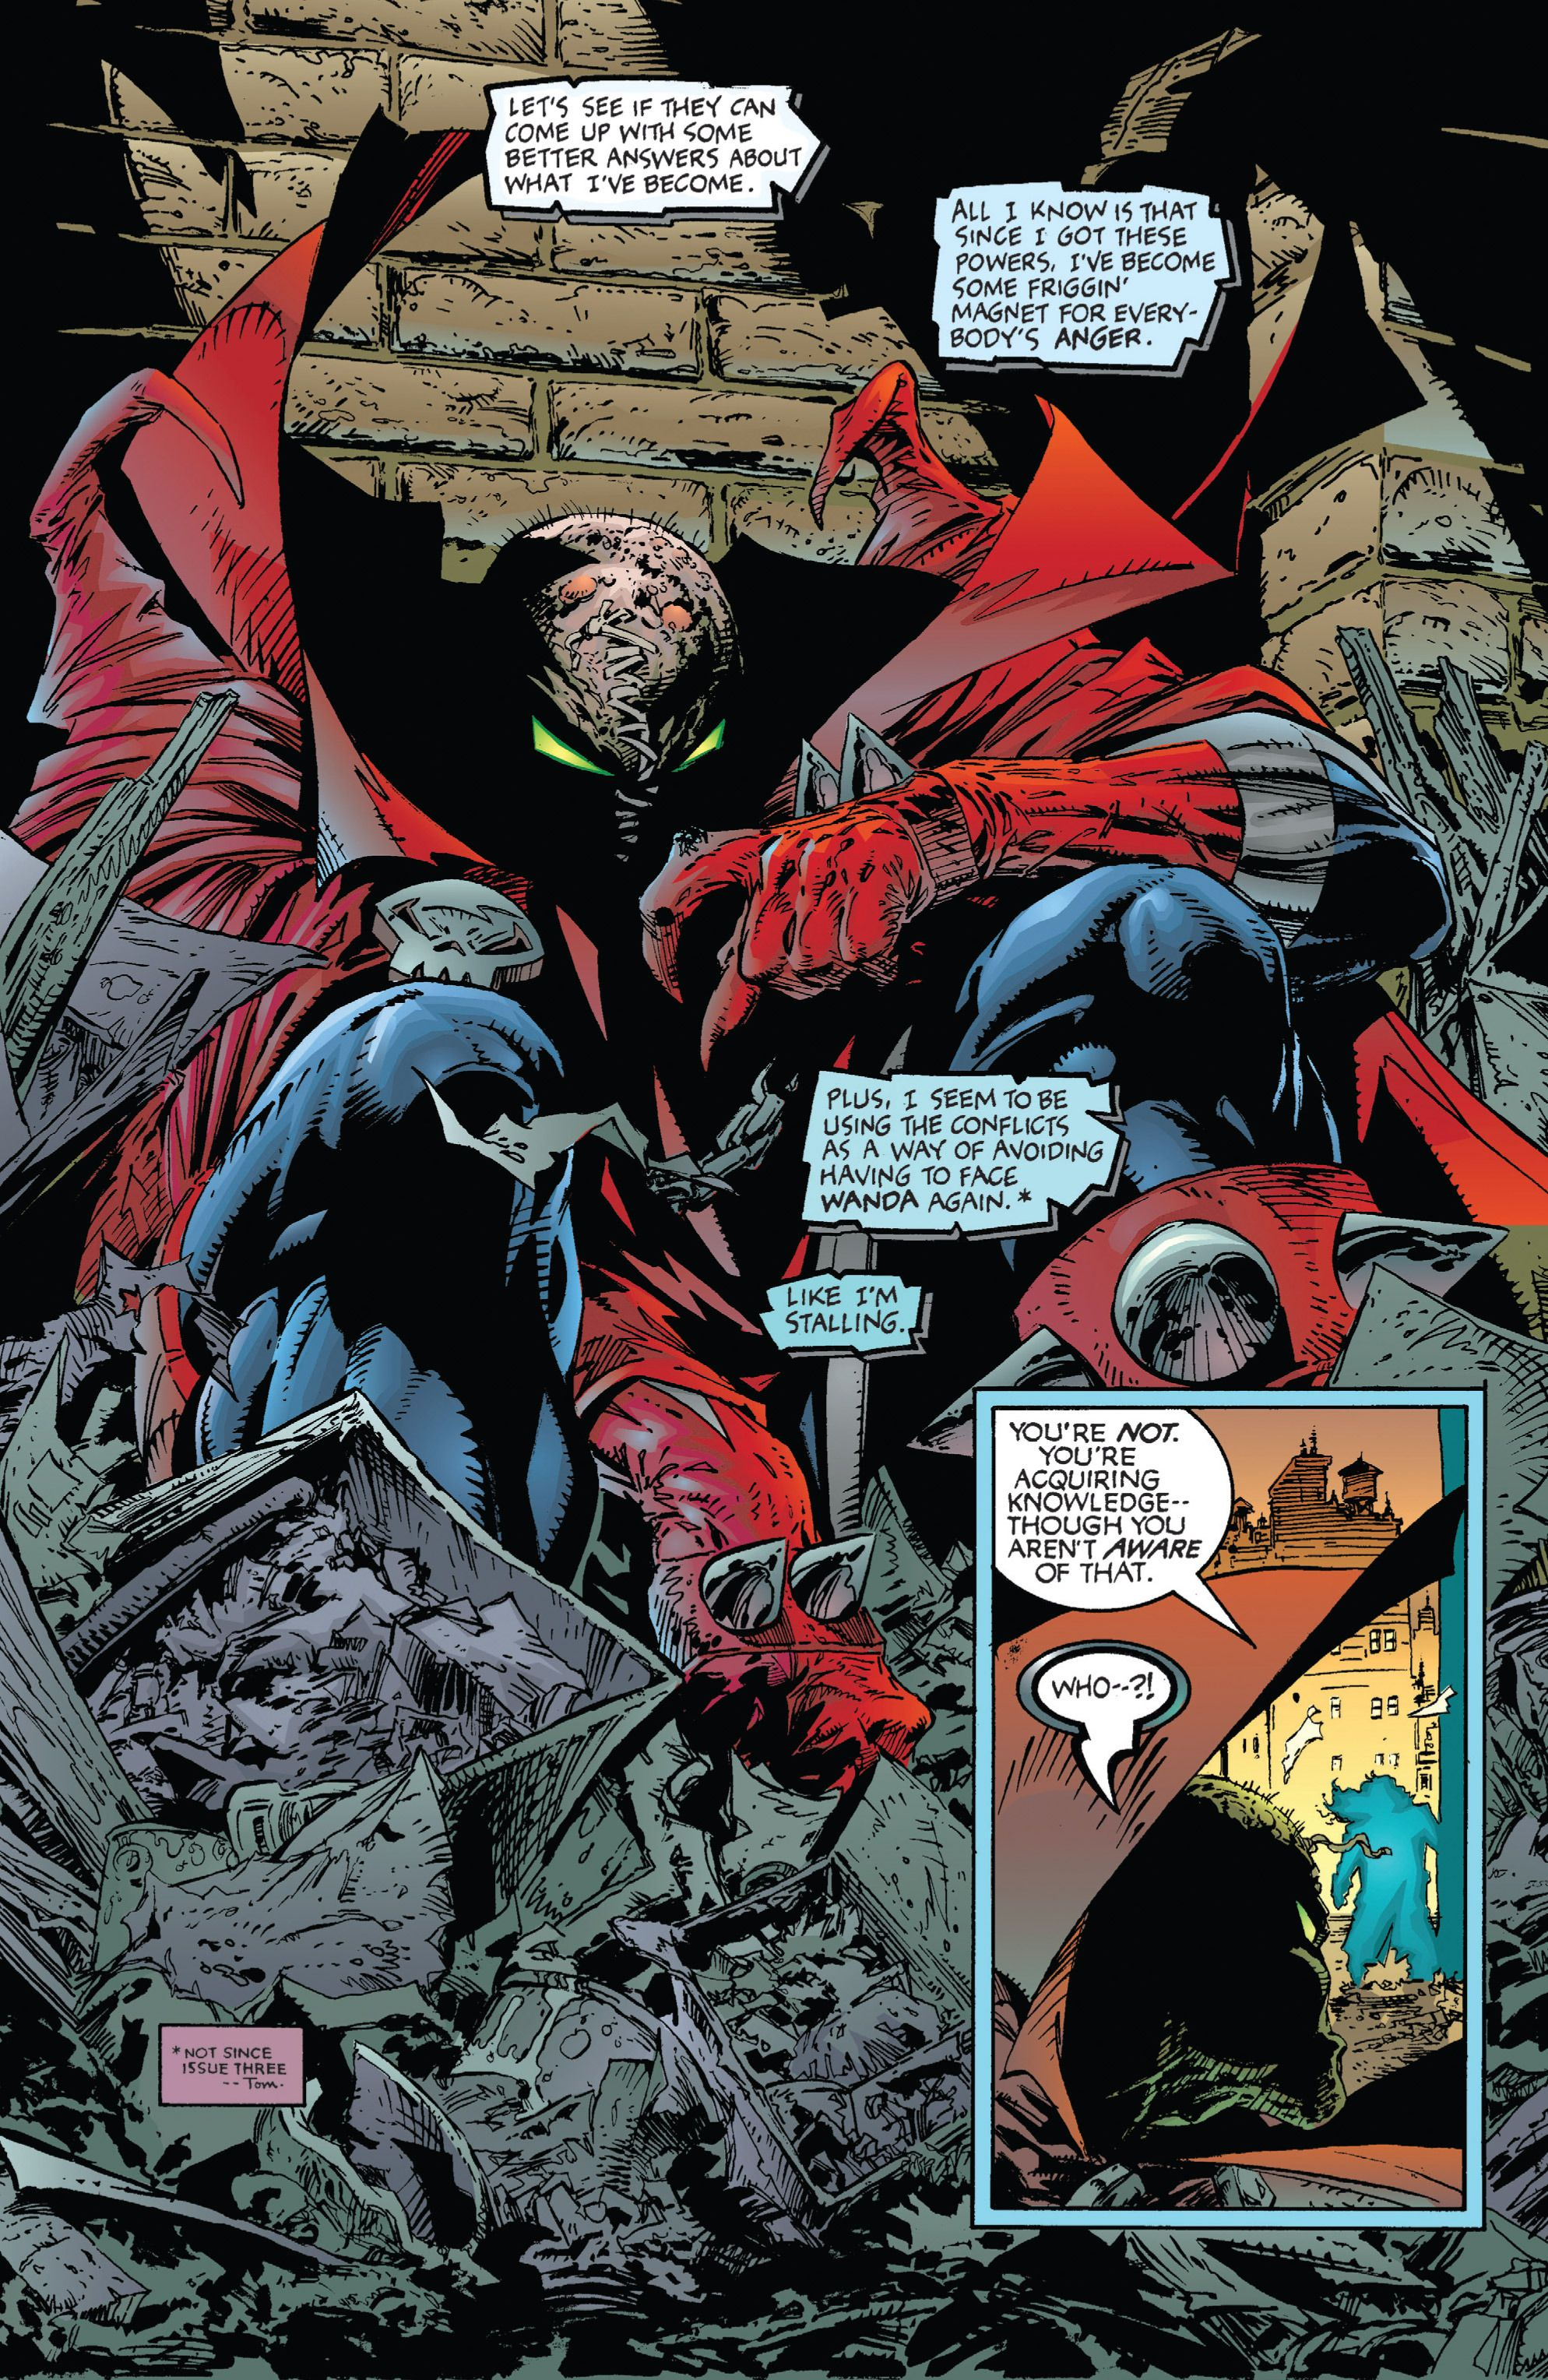 Todd Mcfarlane Spawn Comic Books Art Spawn Comics Comic Book Artists